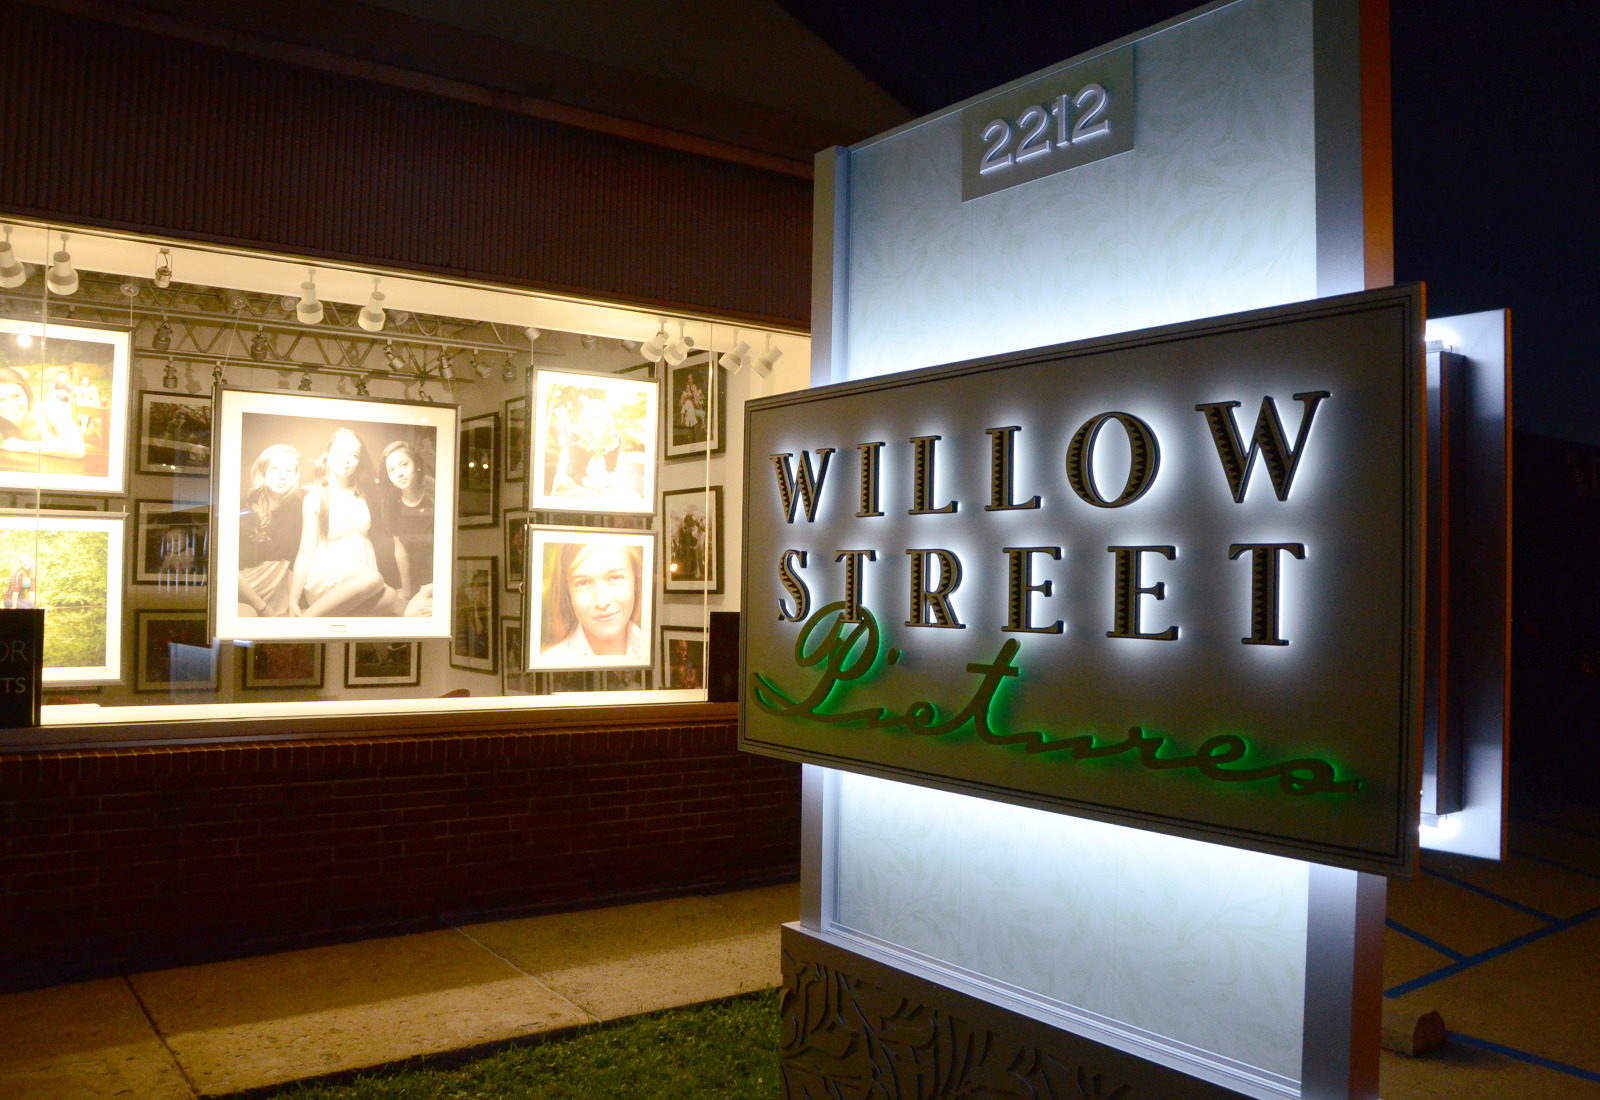 Willow Street Pictures - West Lawn, PA